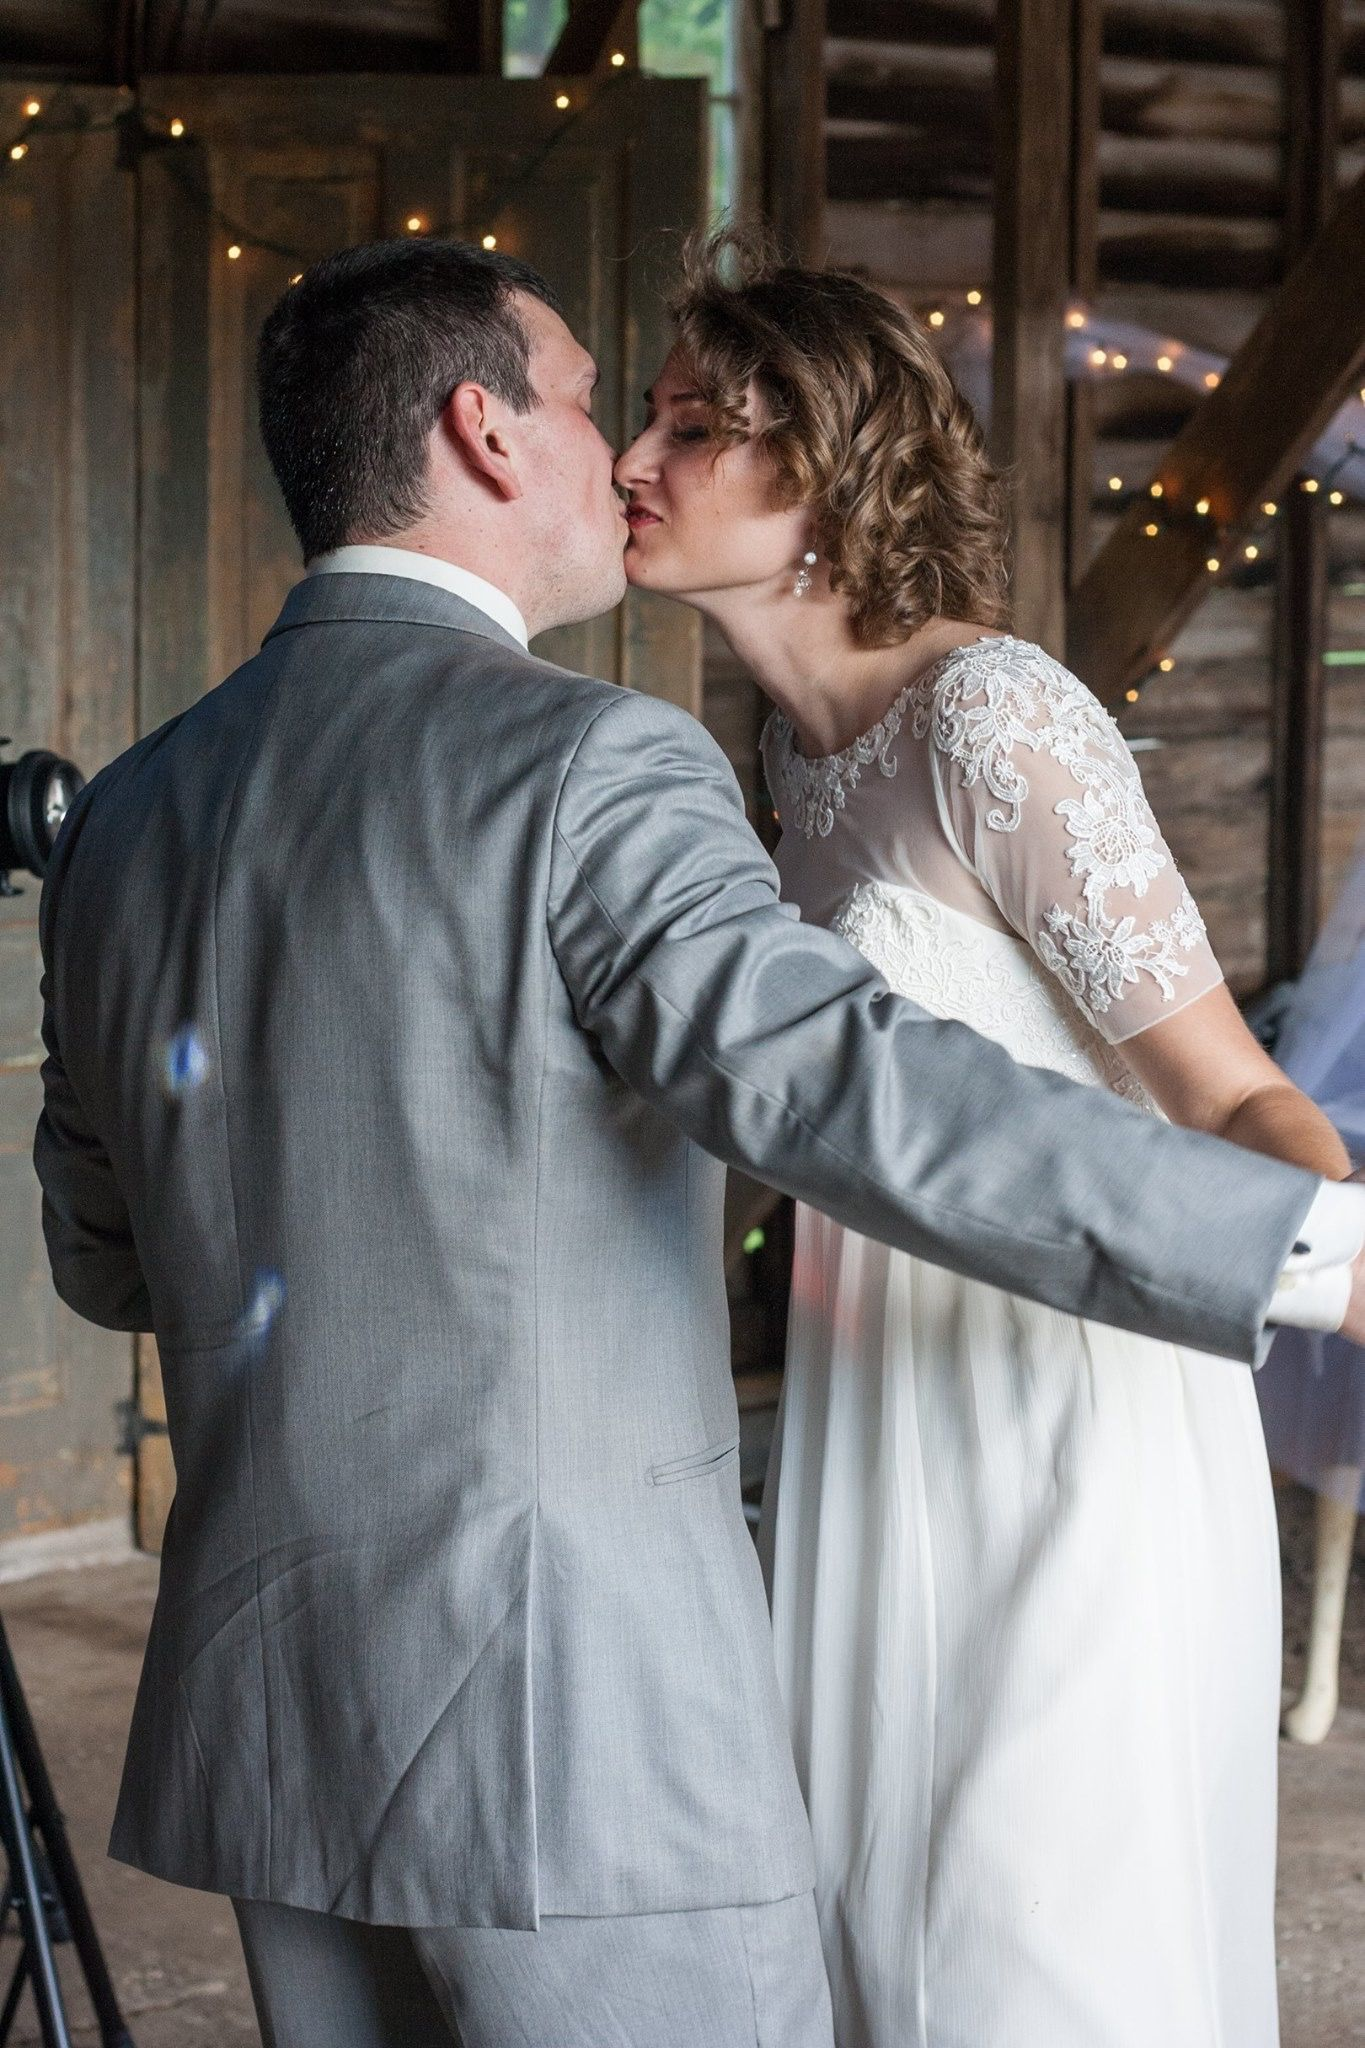 First dance wedding photo with bride and groom kissing. Rustic barn ...